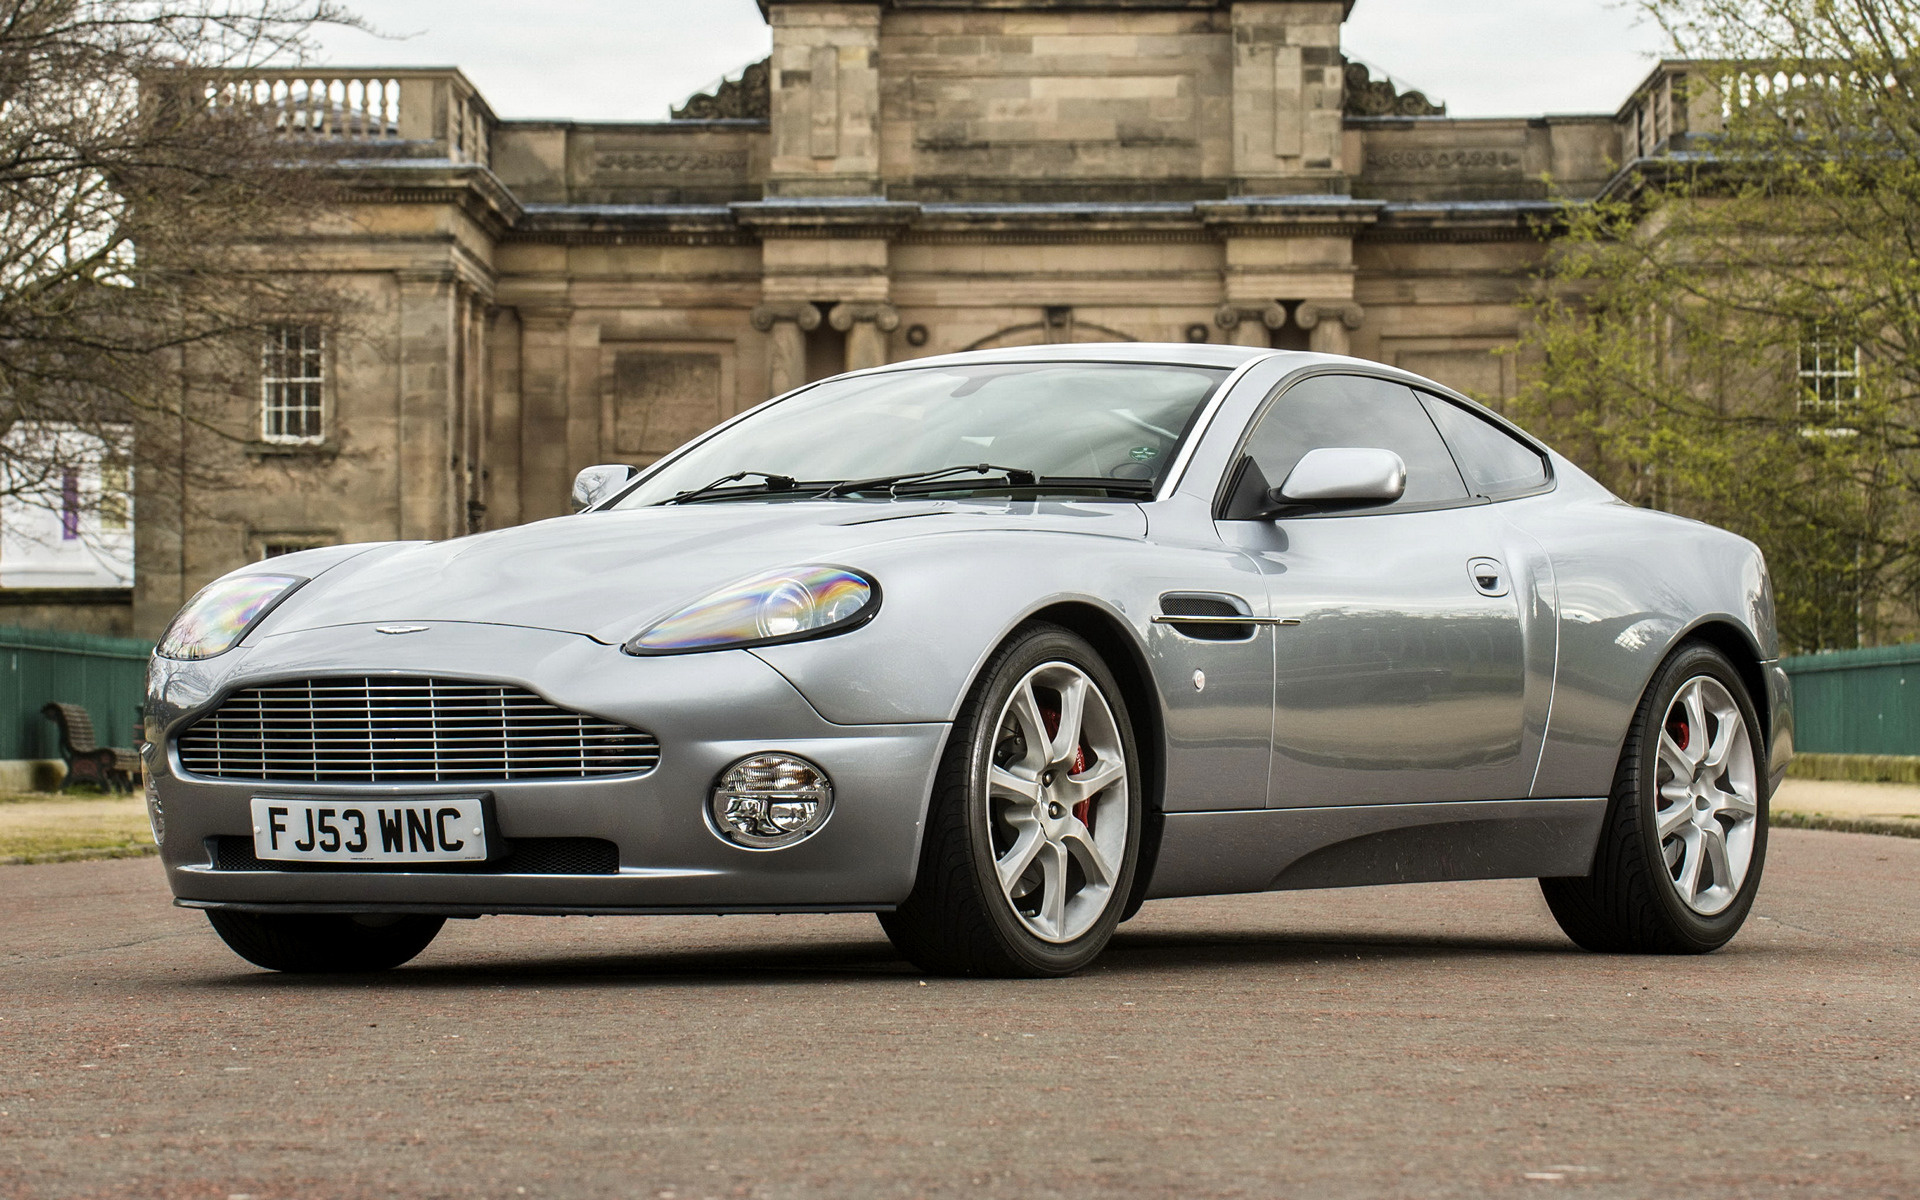 Aston Martin V Vanquish UK Wallpapers And HD Images Car Pixel - 2001 aston martin vanquish